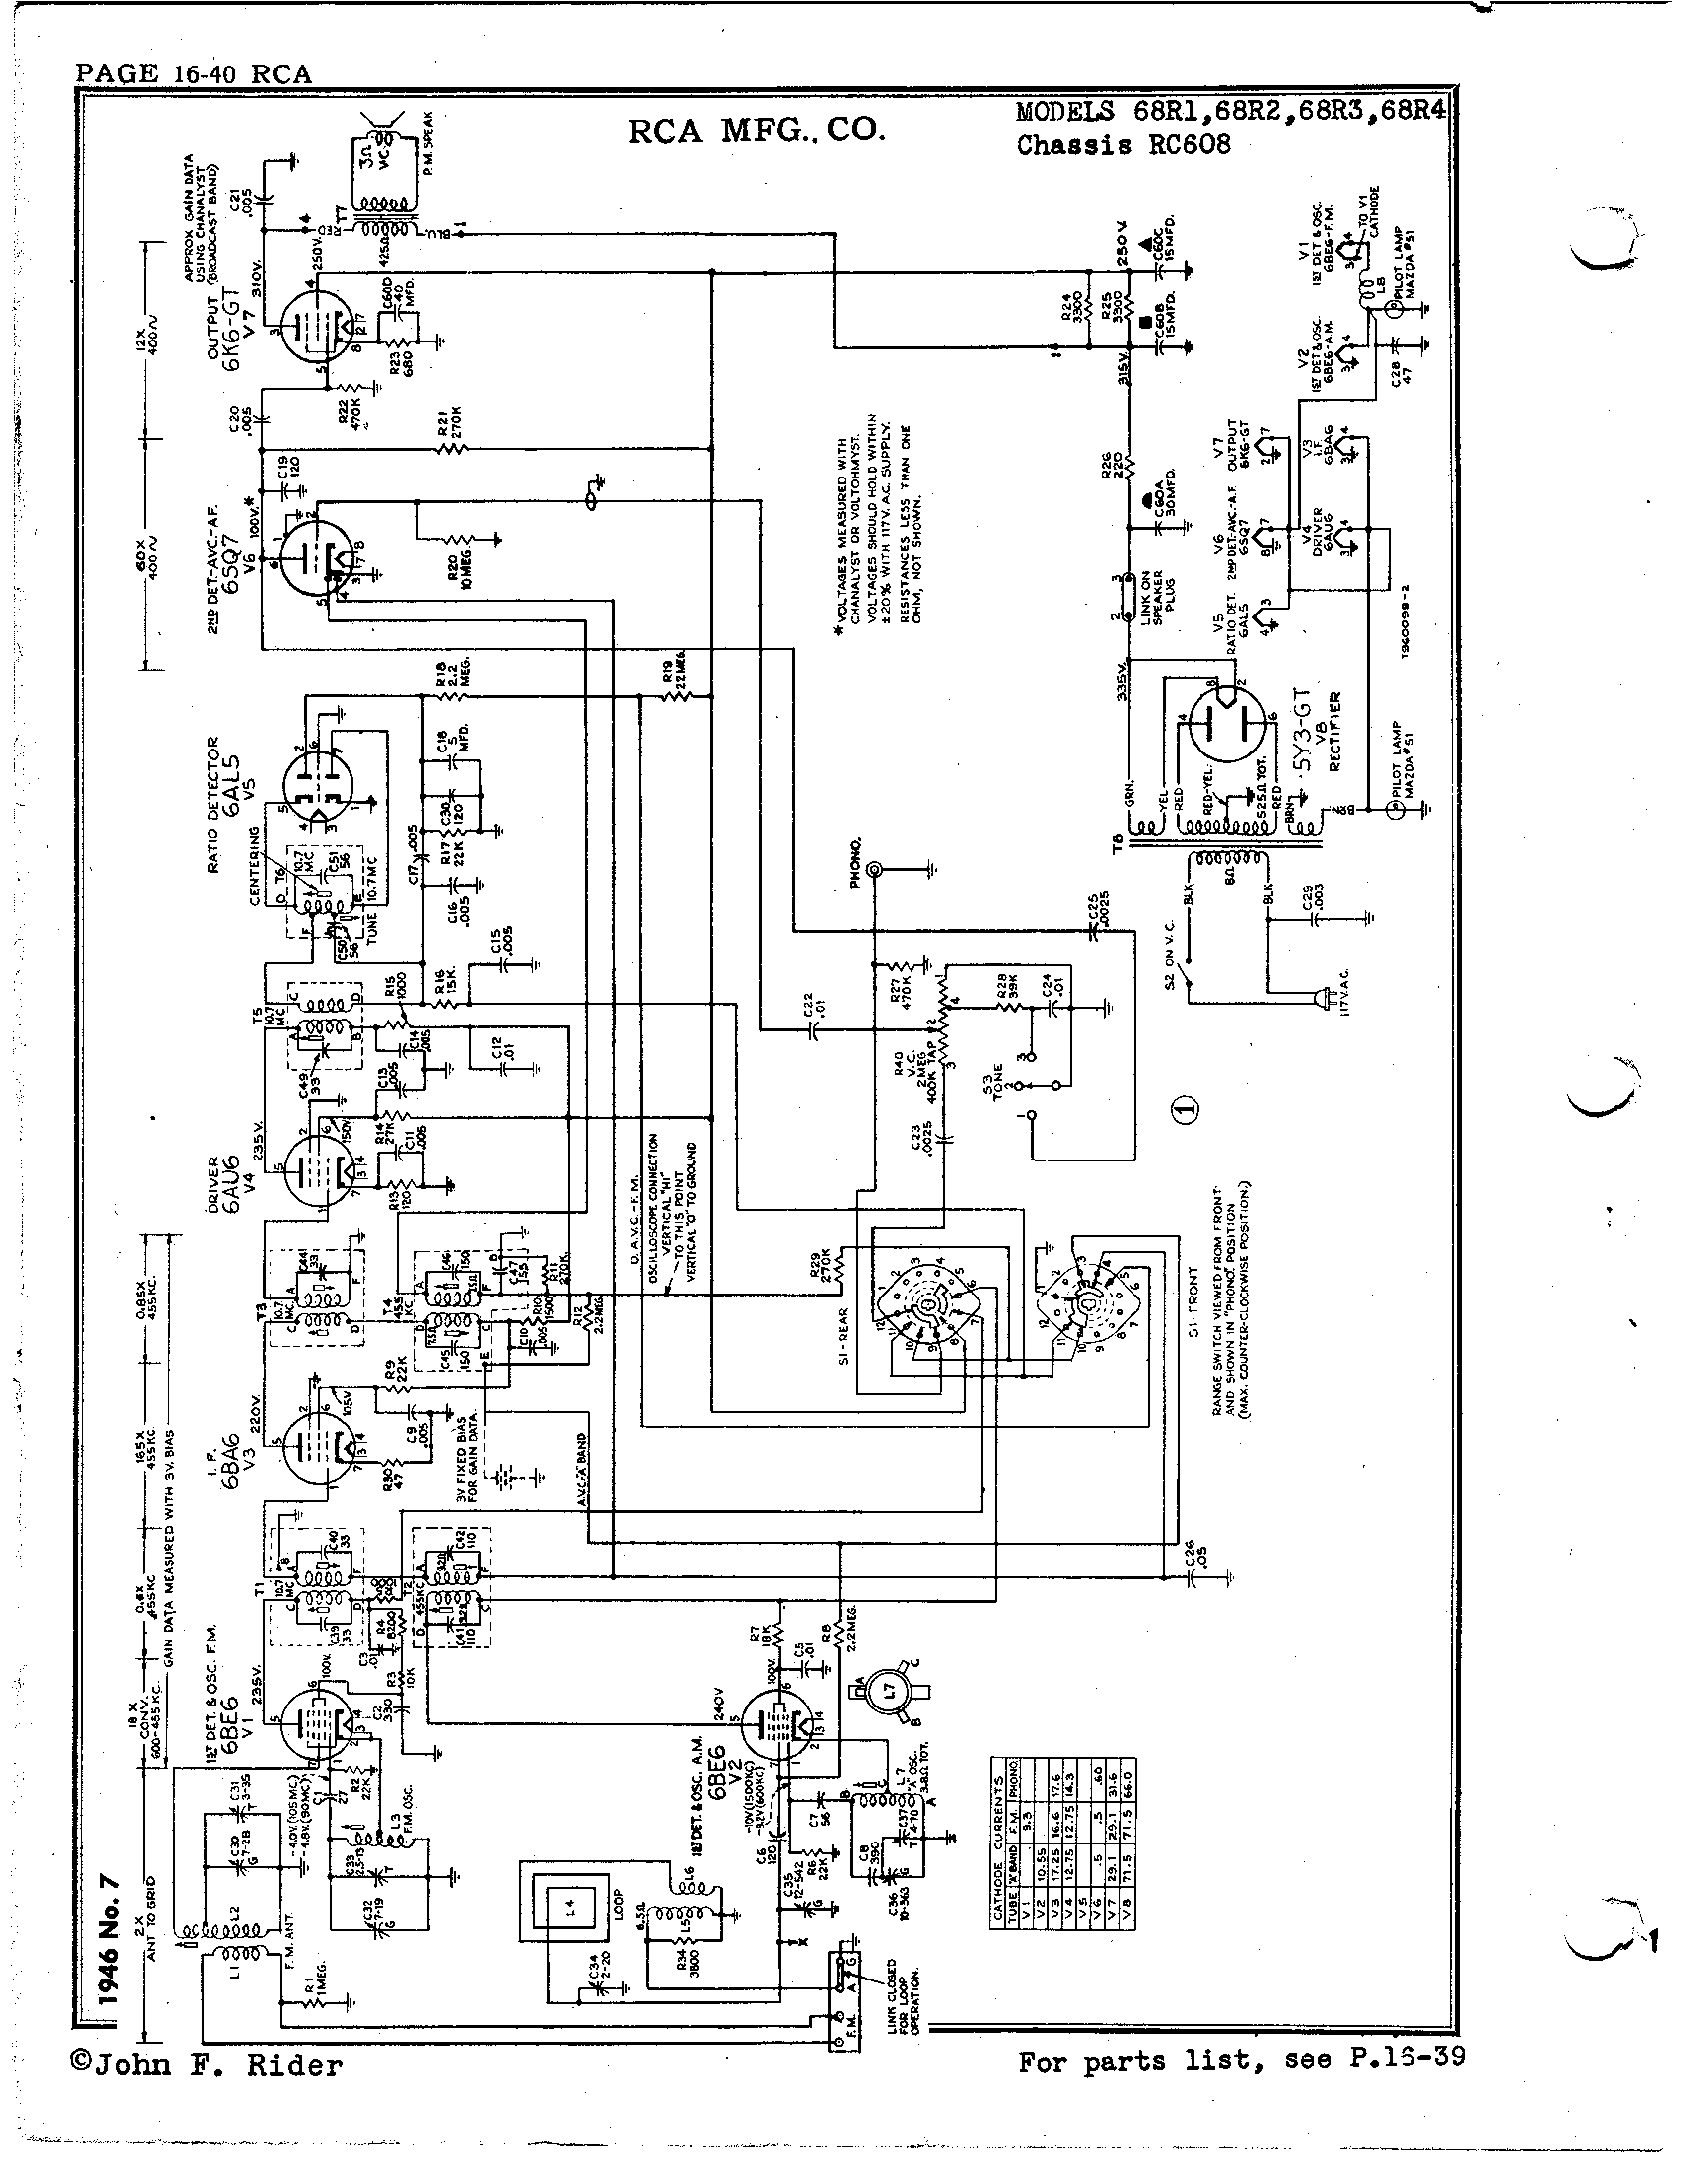 Electronics Irc Archive For 2016 03 05 Garage Door Sensor Wiring Diagram Http Wwwjustanswercom Appliance